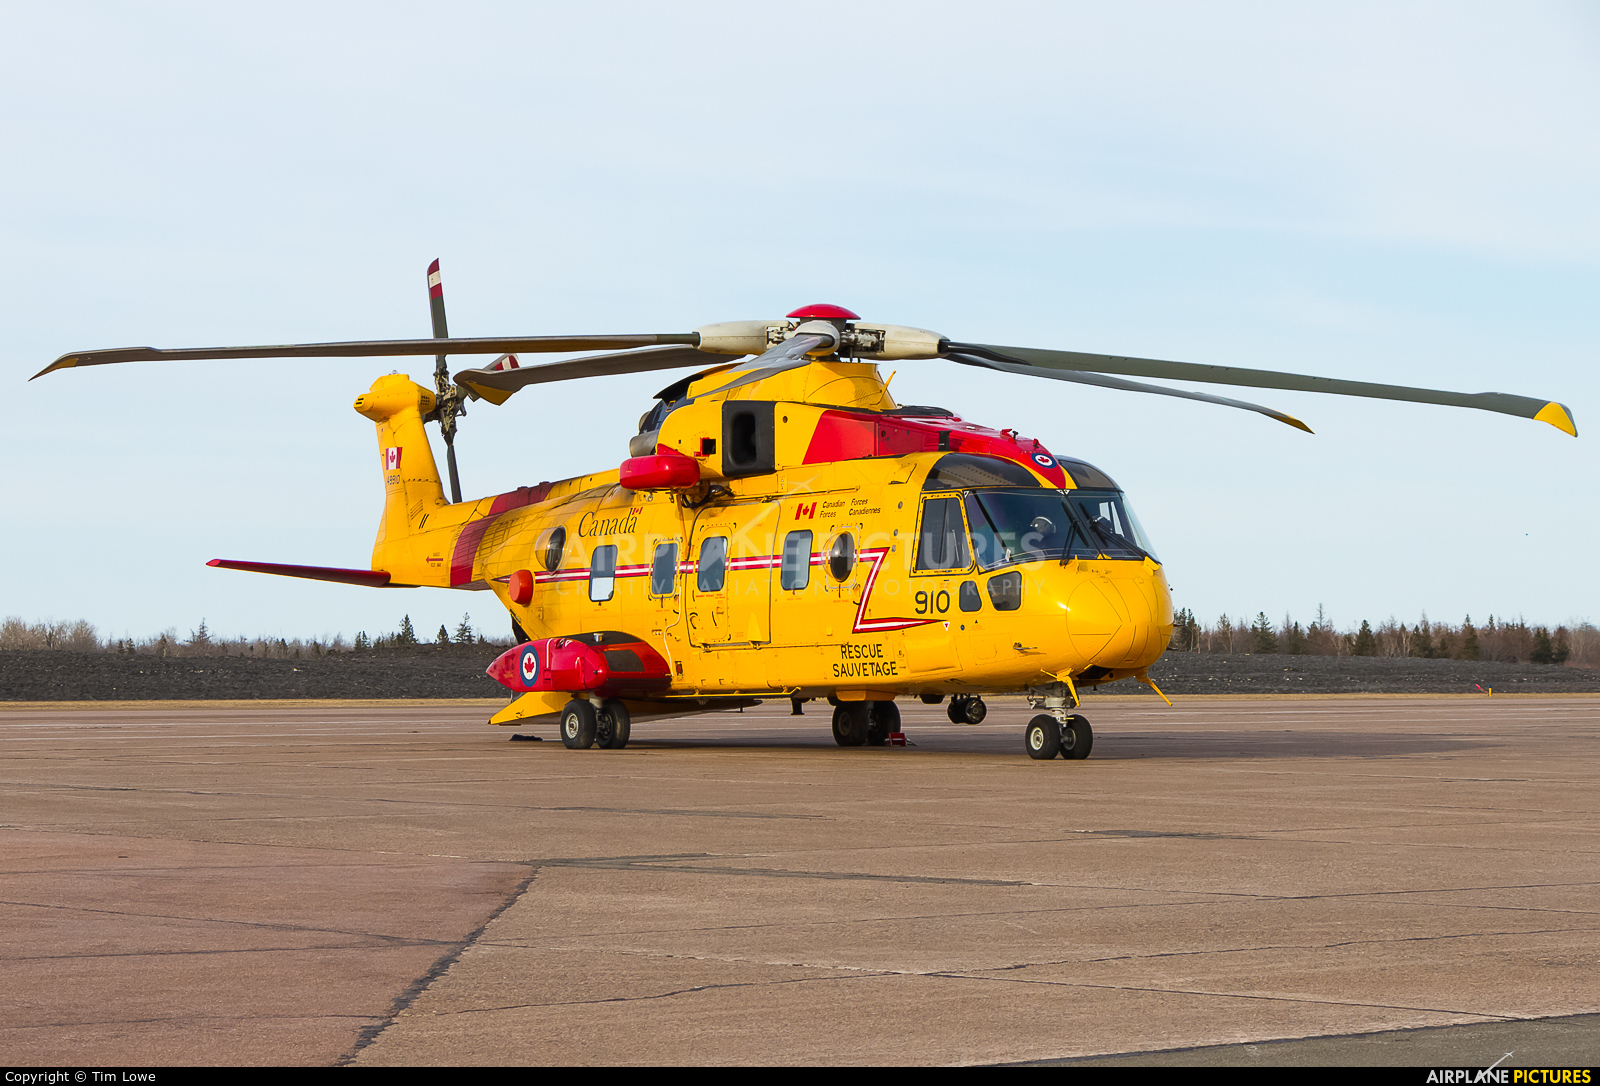 Canada - Air Force 149910 aircraft at greater Moncton International